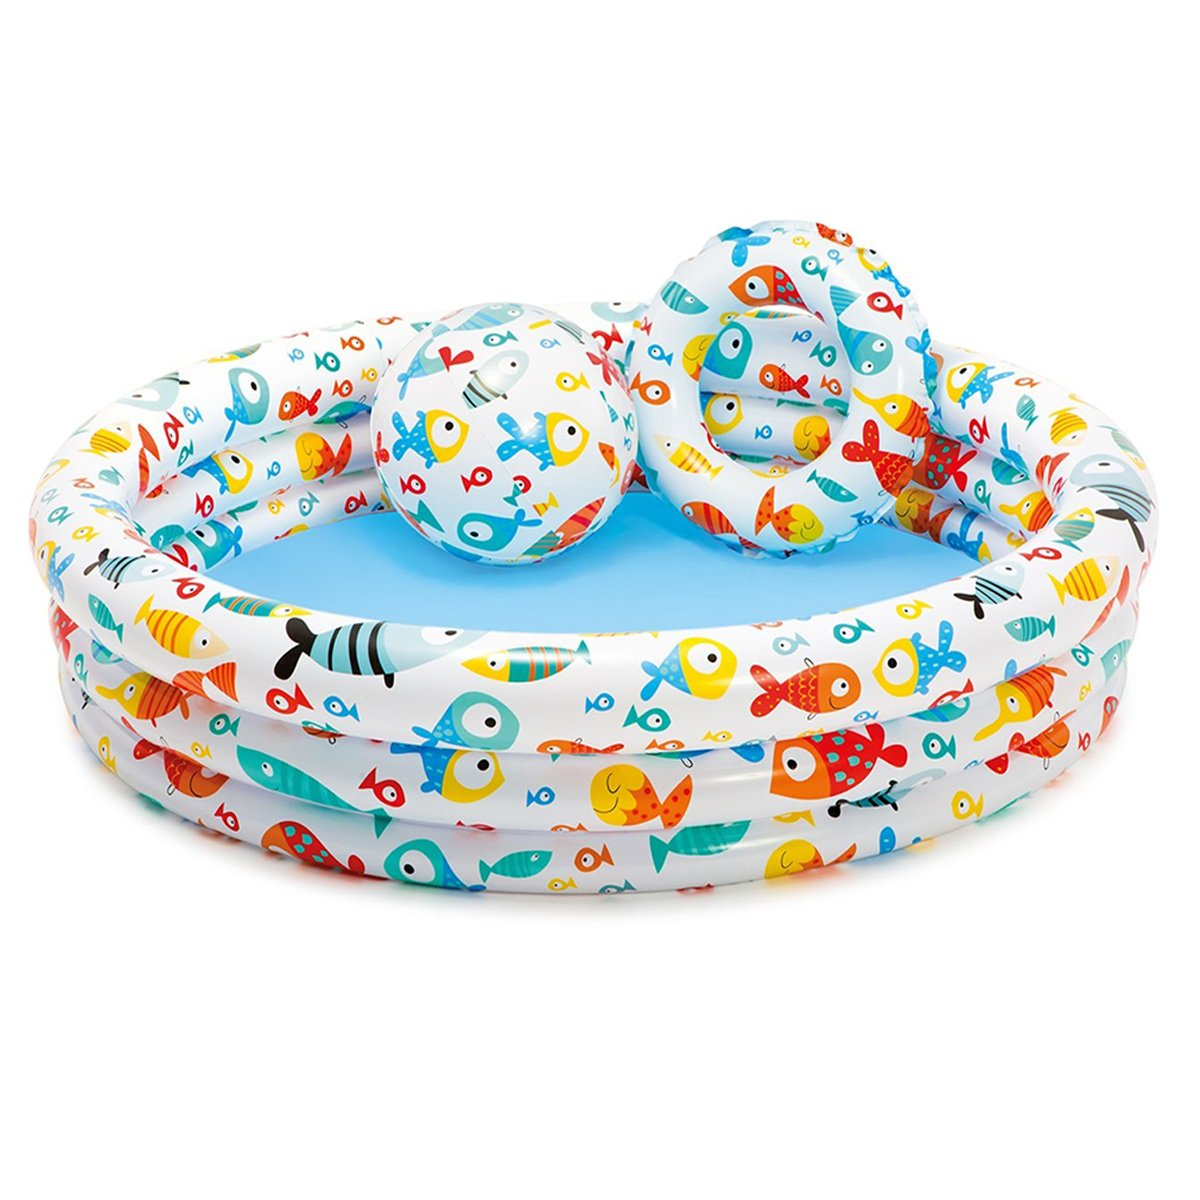 DMGF Inflatable Pool Swimming Ring Ocean Ball 3 Piece Set,Kids Above Ground Pools Swim Center With Electric Air Pump Summer Family Padding Pool For Ages 2+,3Pieces